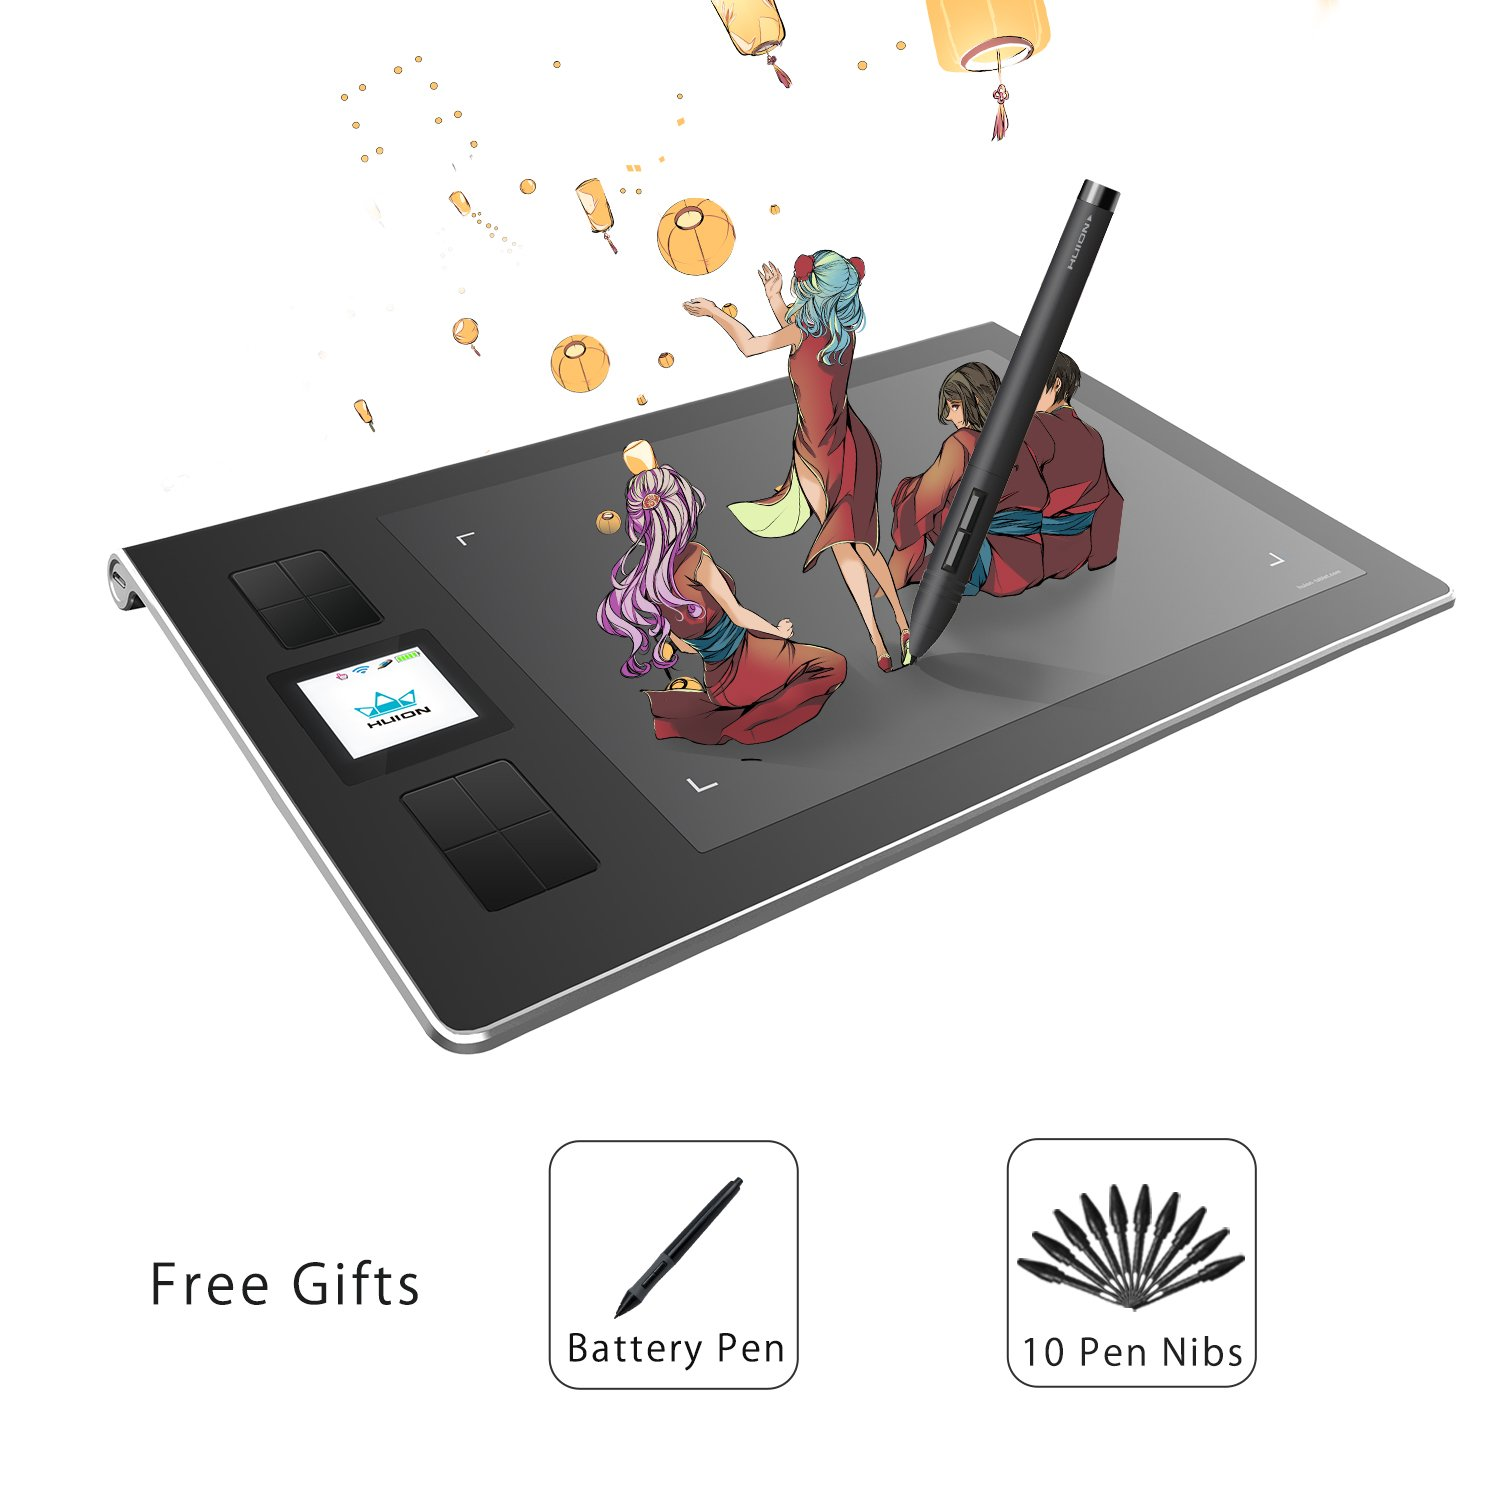 Huion 6-by-9 inch Wireless Graphics Tablet Drawing Tablet with 8 Express Keys TFT Display and Build-in Li-ion Battery- DWH69 by Huion